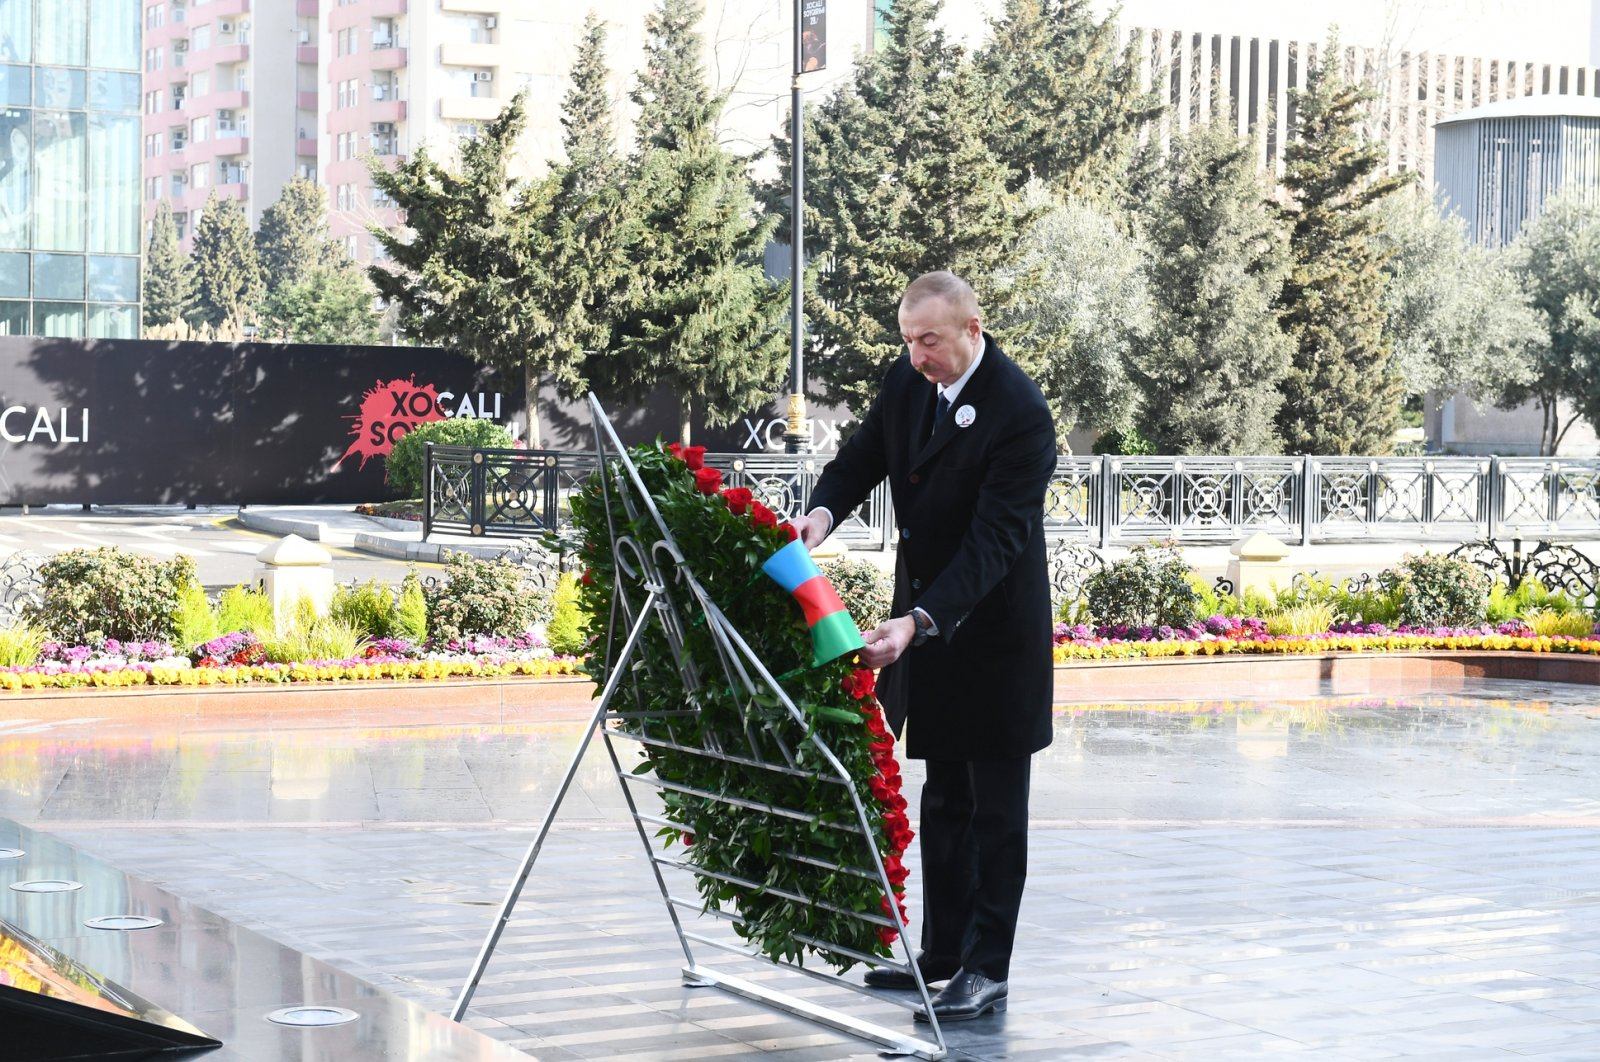 Azerbaijan's President Ilham Aliyev is seen during a ceremony to commemorate the 29th anniversary of the Khojaly Massacre in the capital Baku, Azerbaijan, Feb. 26, 2021. (AA Photo)